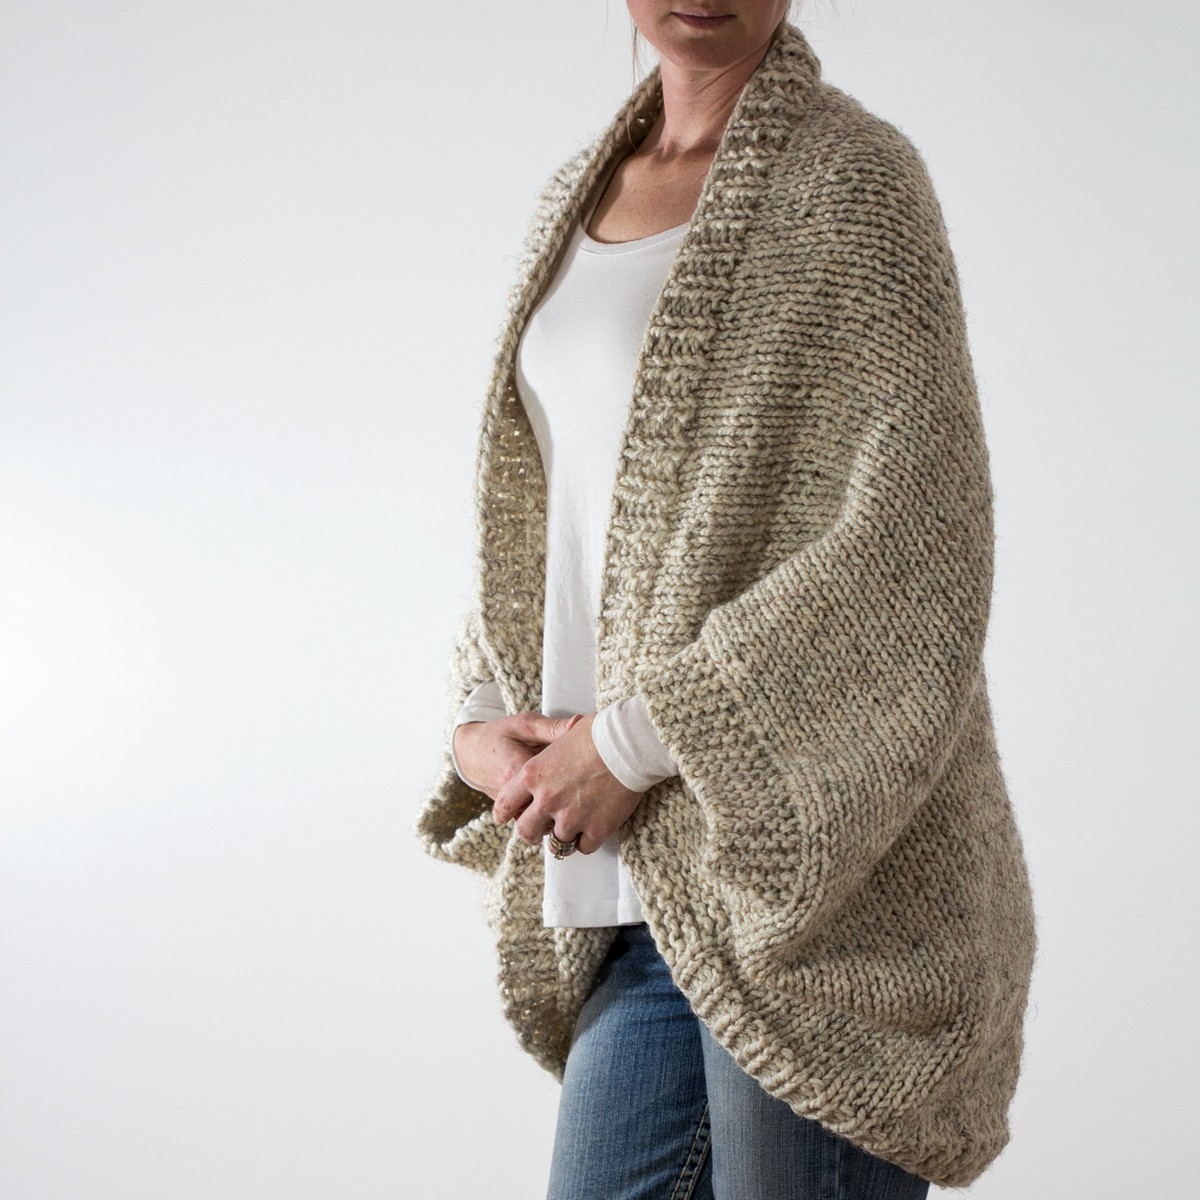 Oversized Jumper Knitting Pattern : DECISIVENESS: Oversized Scoop Sweater Knitting Pattern   Brome Fields